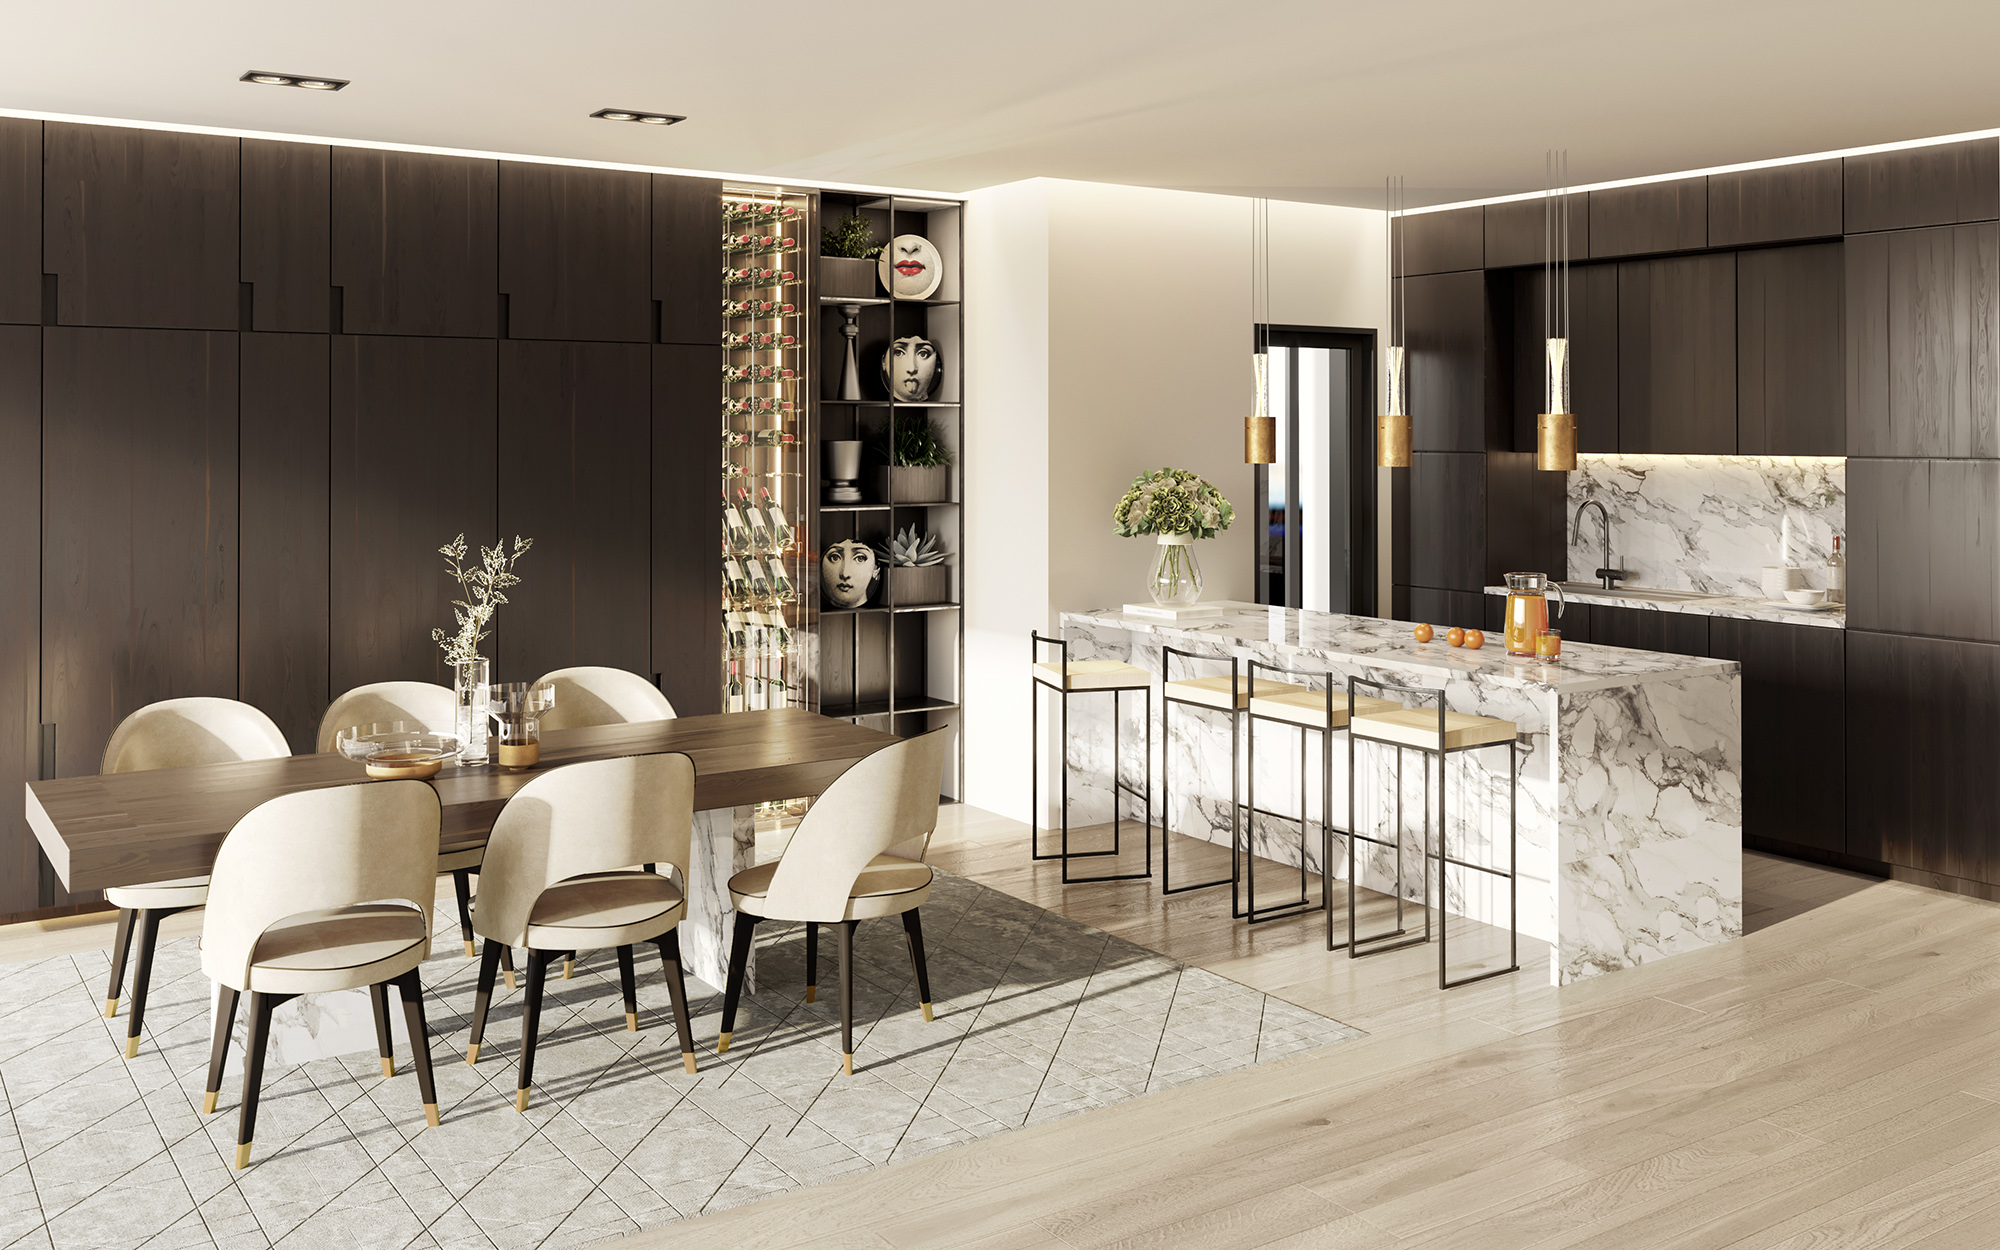 Residence 301 - Jasmine Residences by Imperio Properties with Fornasetti plates and vases